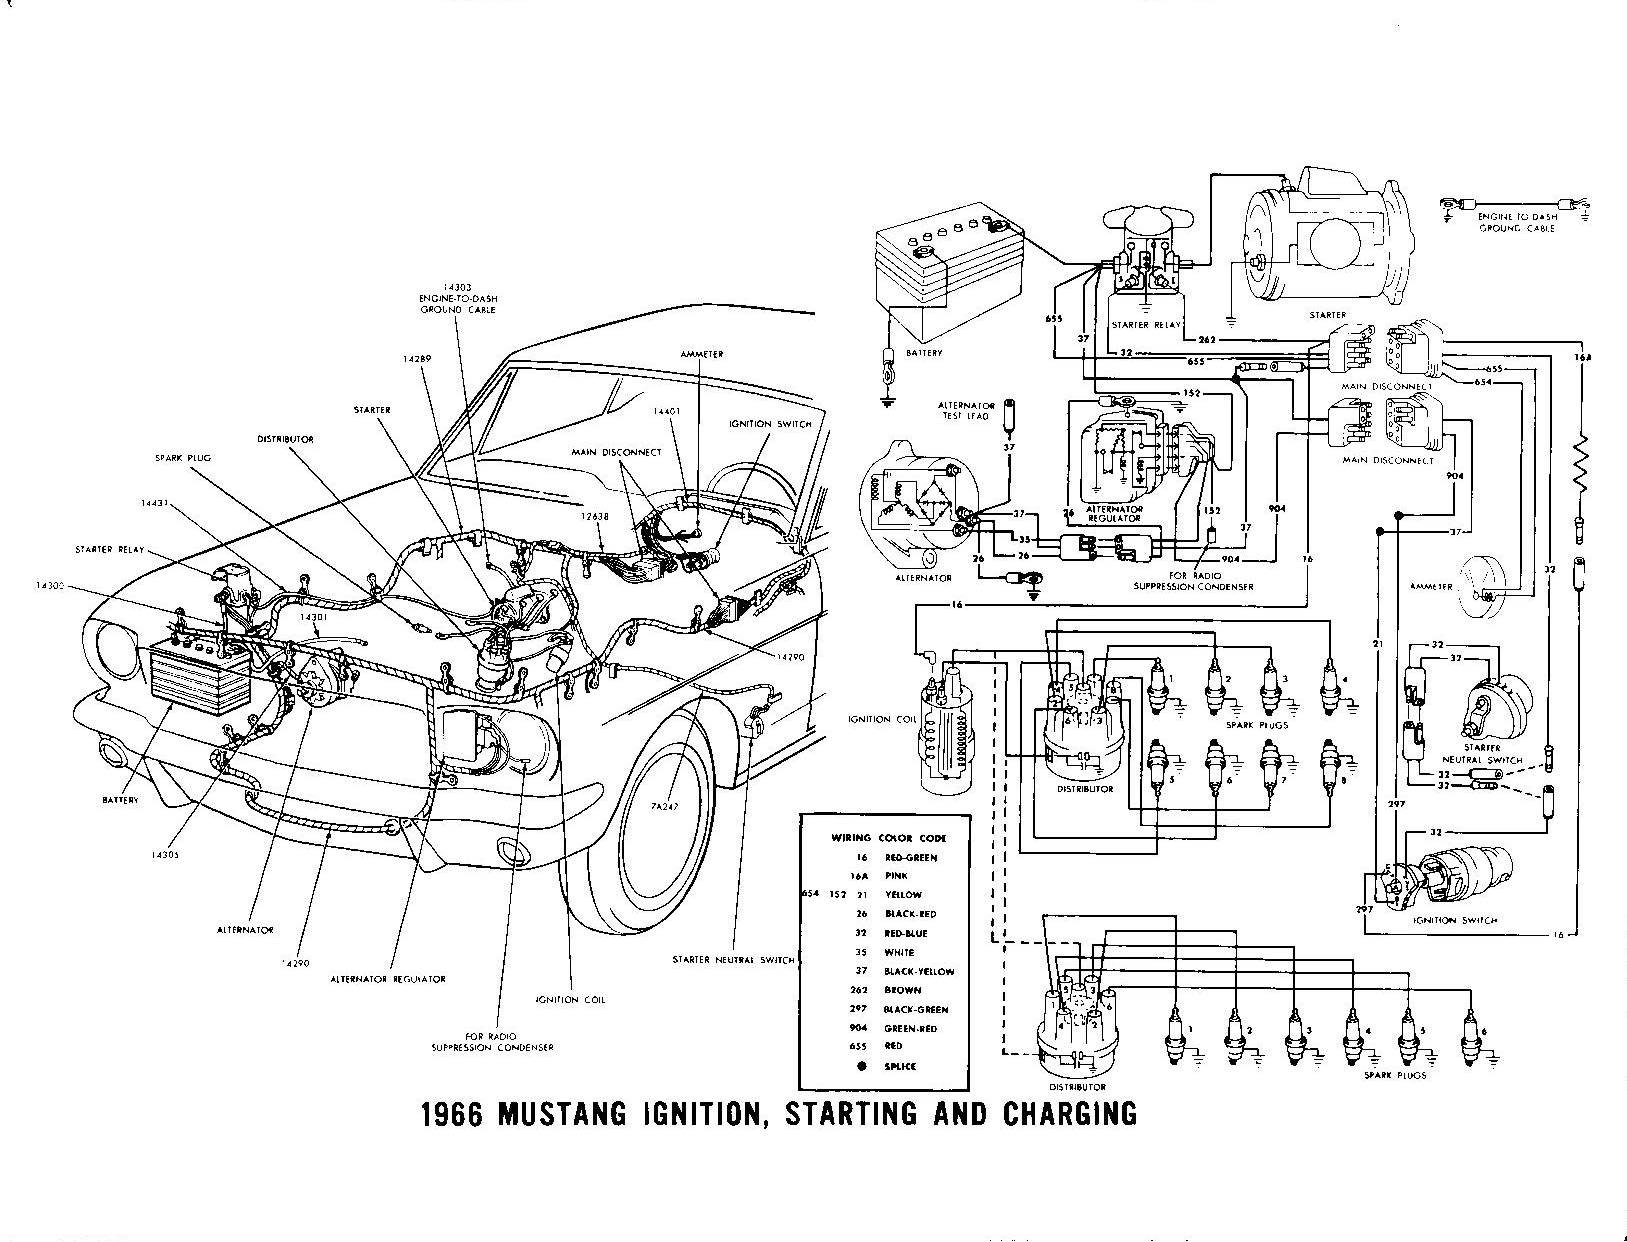 Voltage Regulator Wiring 1966 Mustang